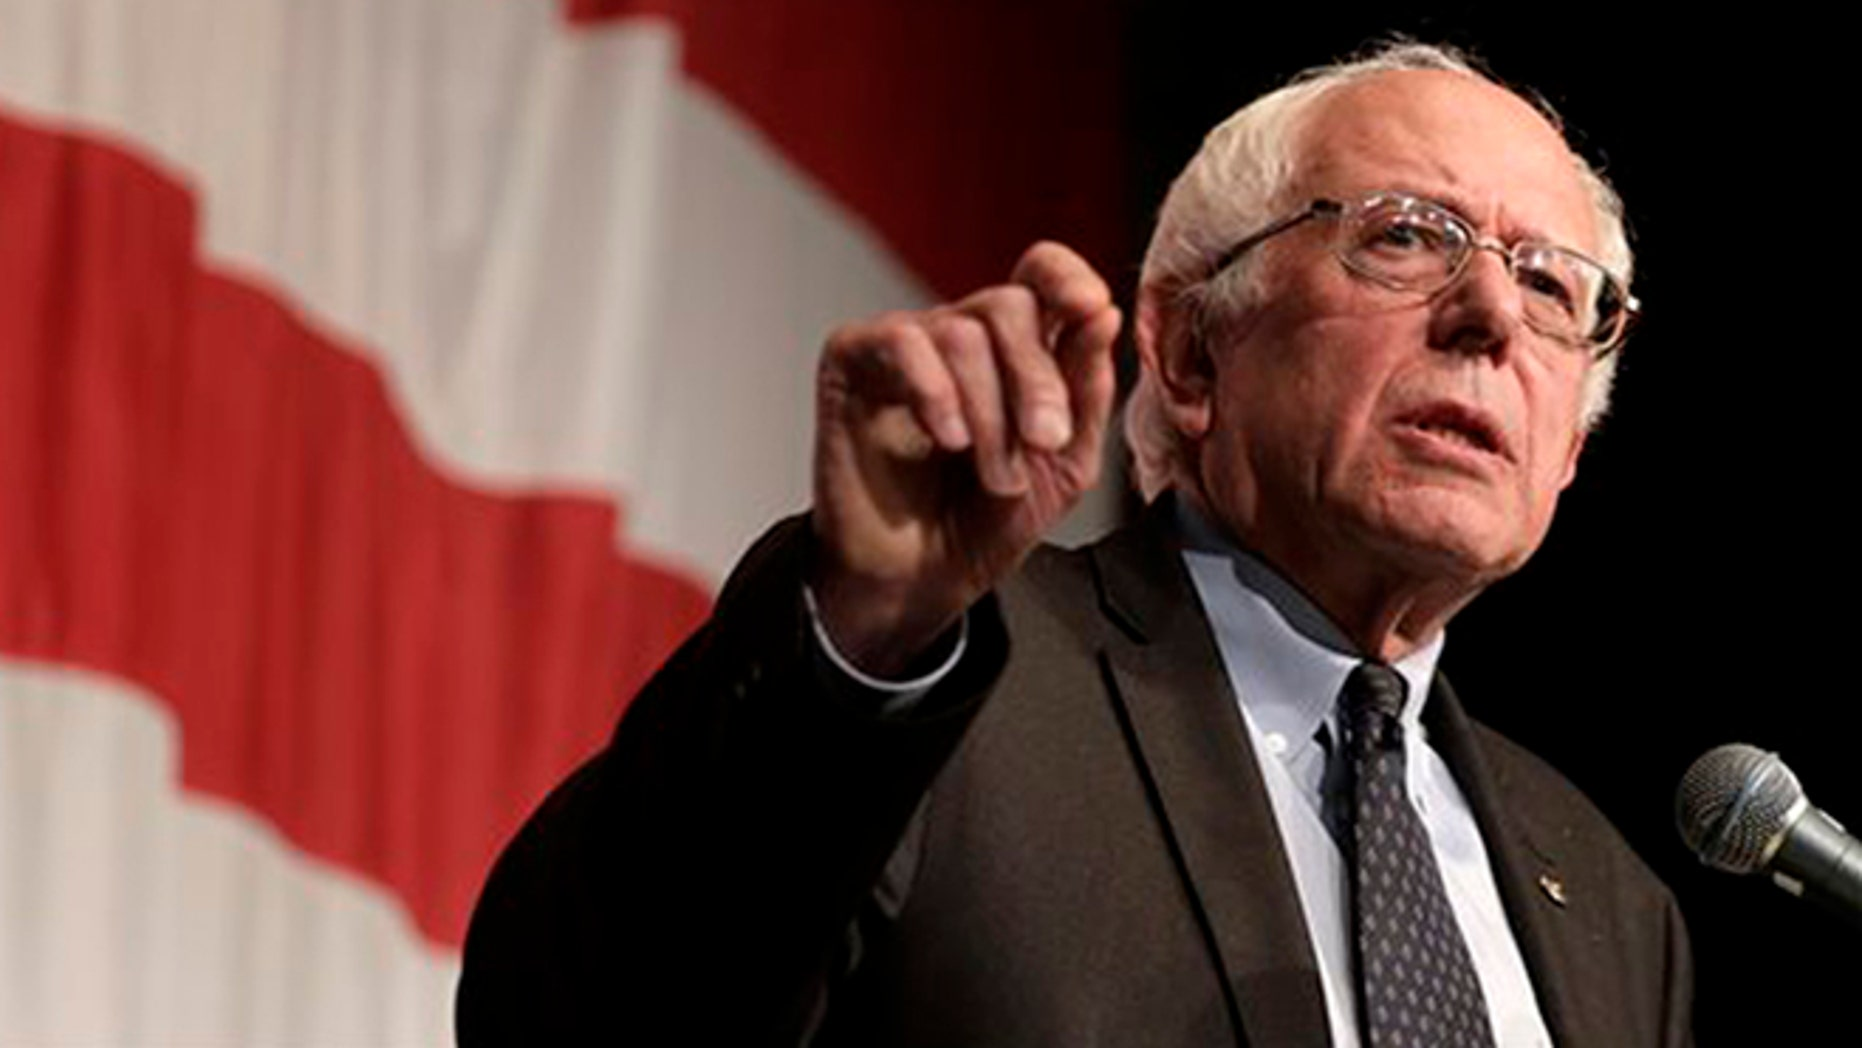 In this Aug. 14, 2015, file photo, Democratic presidential candidate Sen. Bernie Sanders, I-Vt., speaks at the at the Iowa Democratic Wing Ding at the Surf Ballroom in Clear Lake, Iowa. (AP Photo/Charlie Riedel, File)